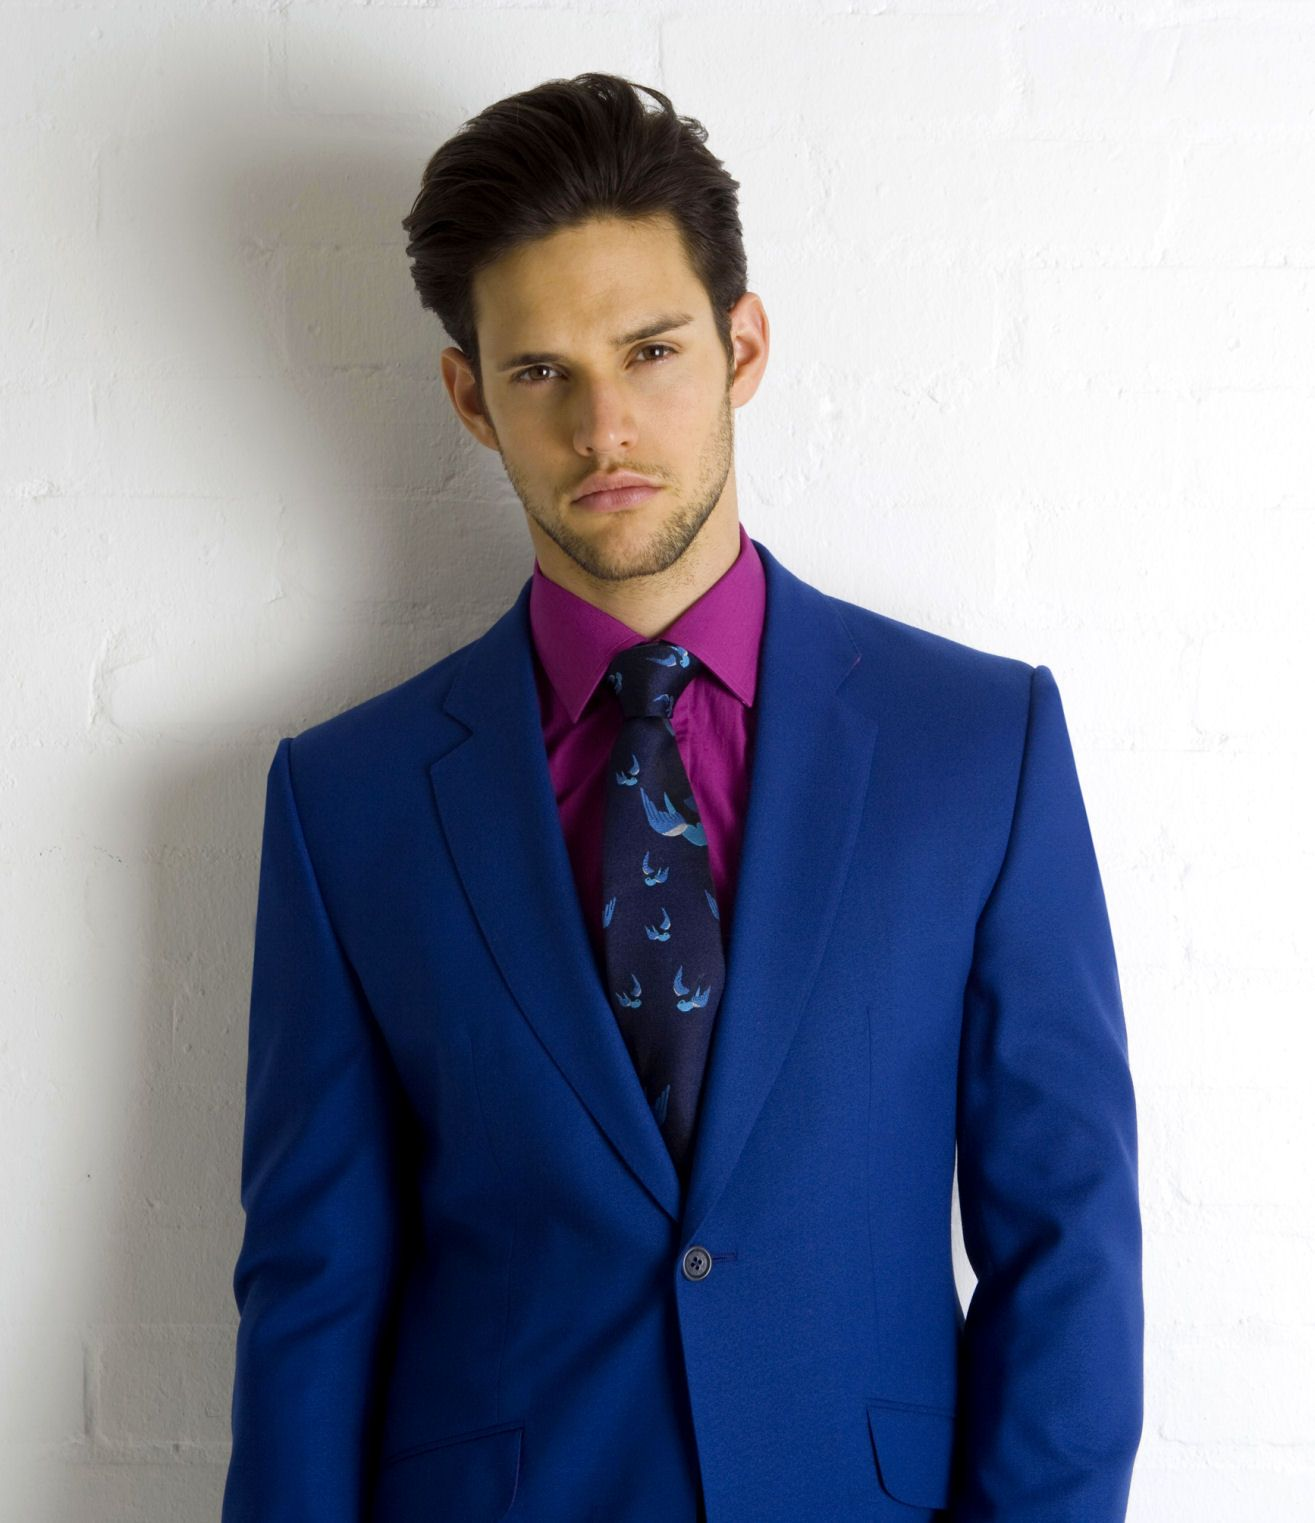 suit and tie for men | Electric Blue Suit Shirt & Tie from Marc ...